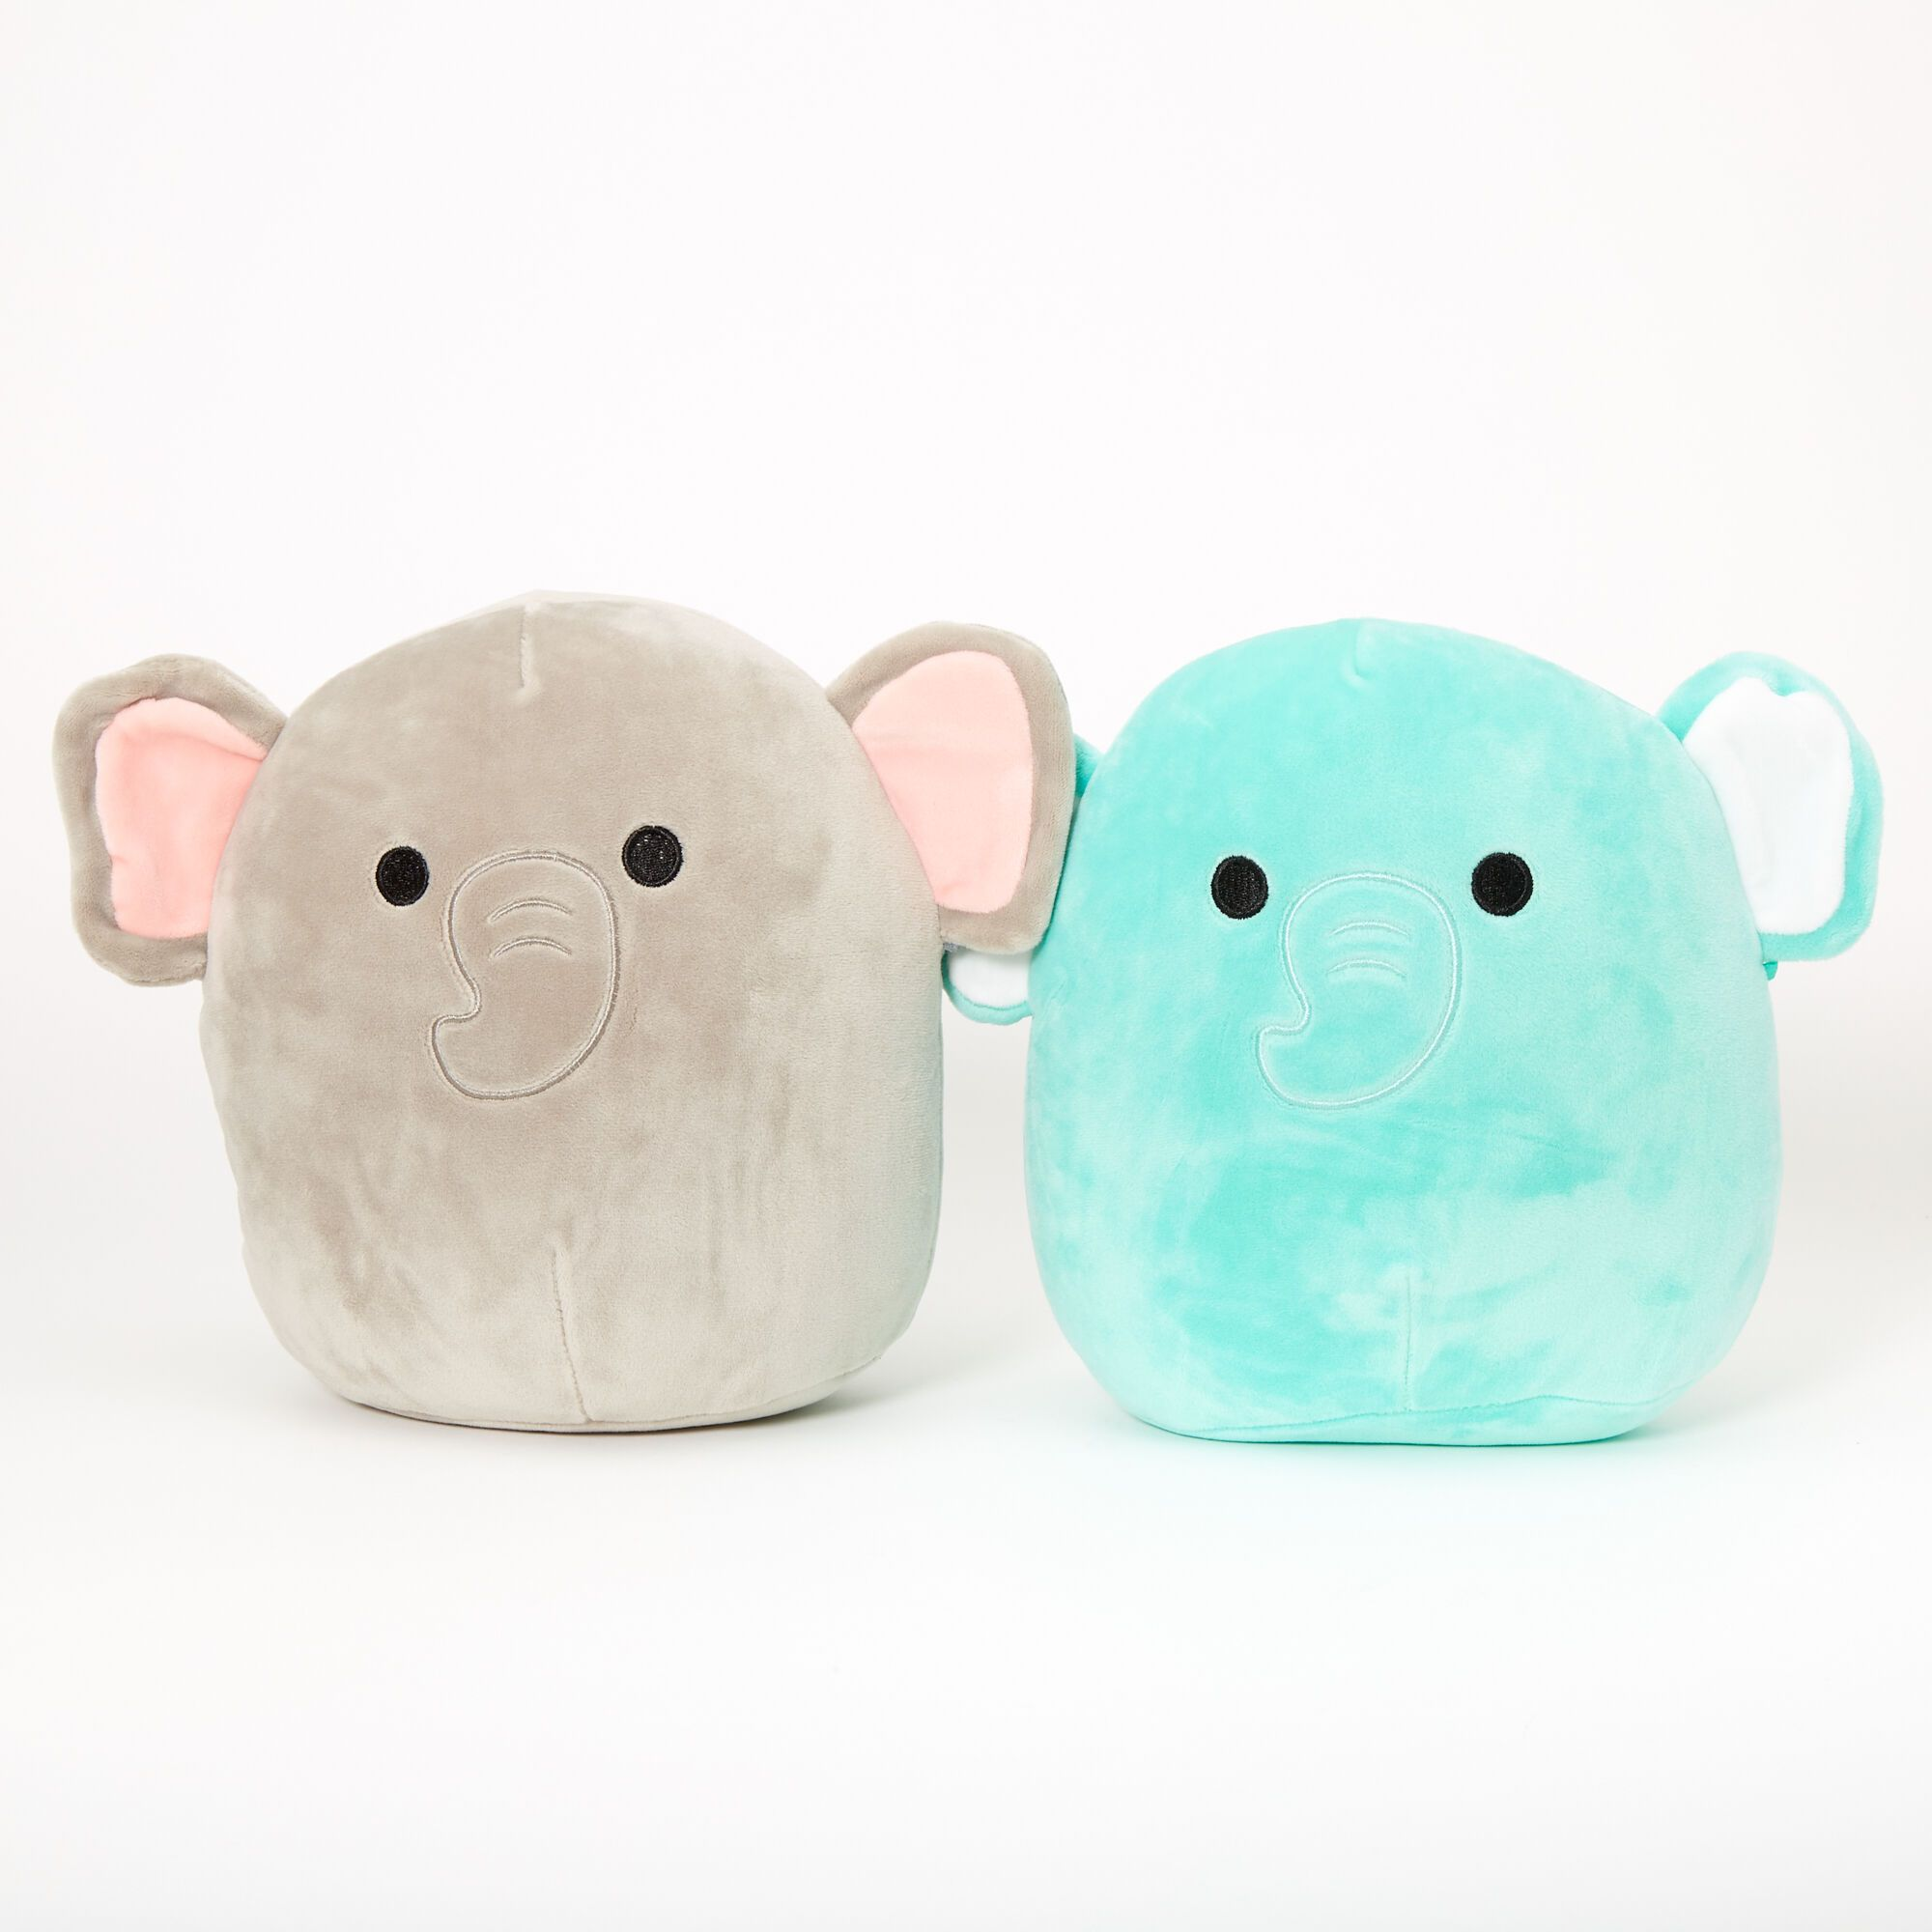 Squishmallows 8 Elephant Plush Toy Styles May Vary In 2020 Elephant Plush Toy Elephant Plush Plush Toy